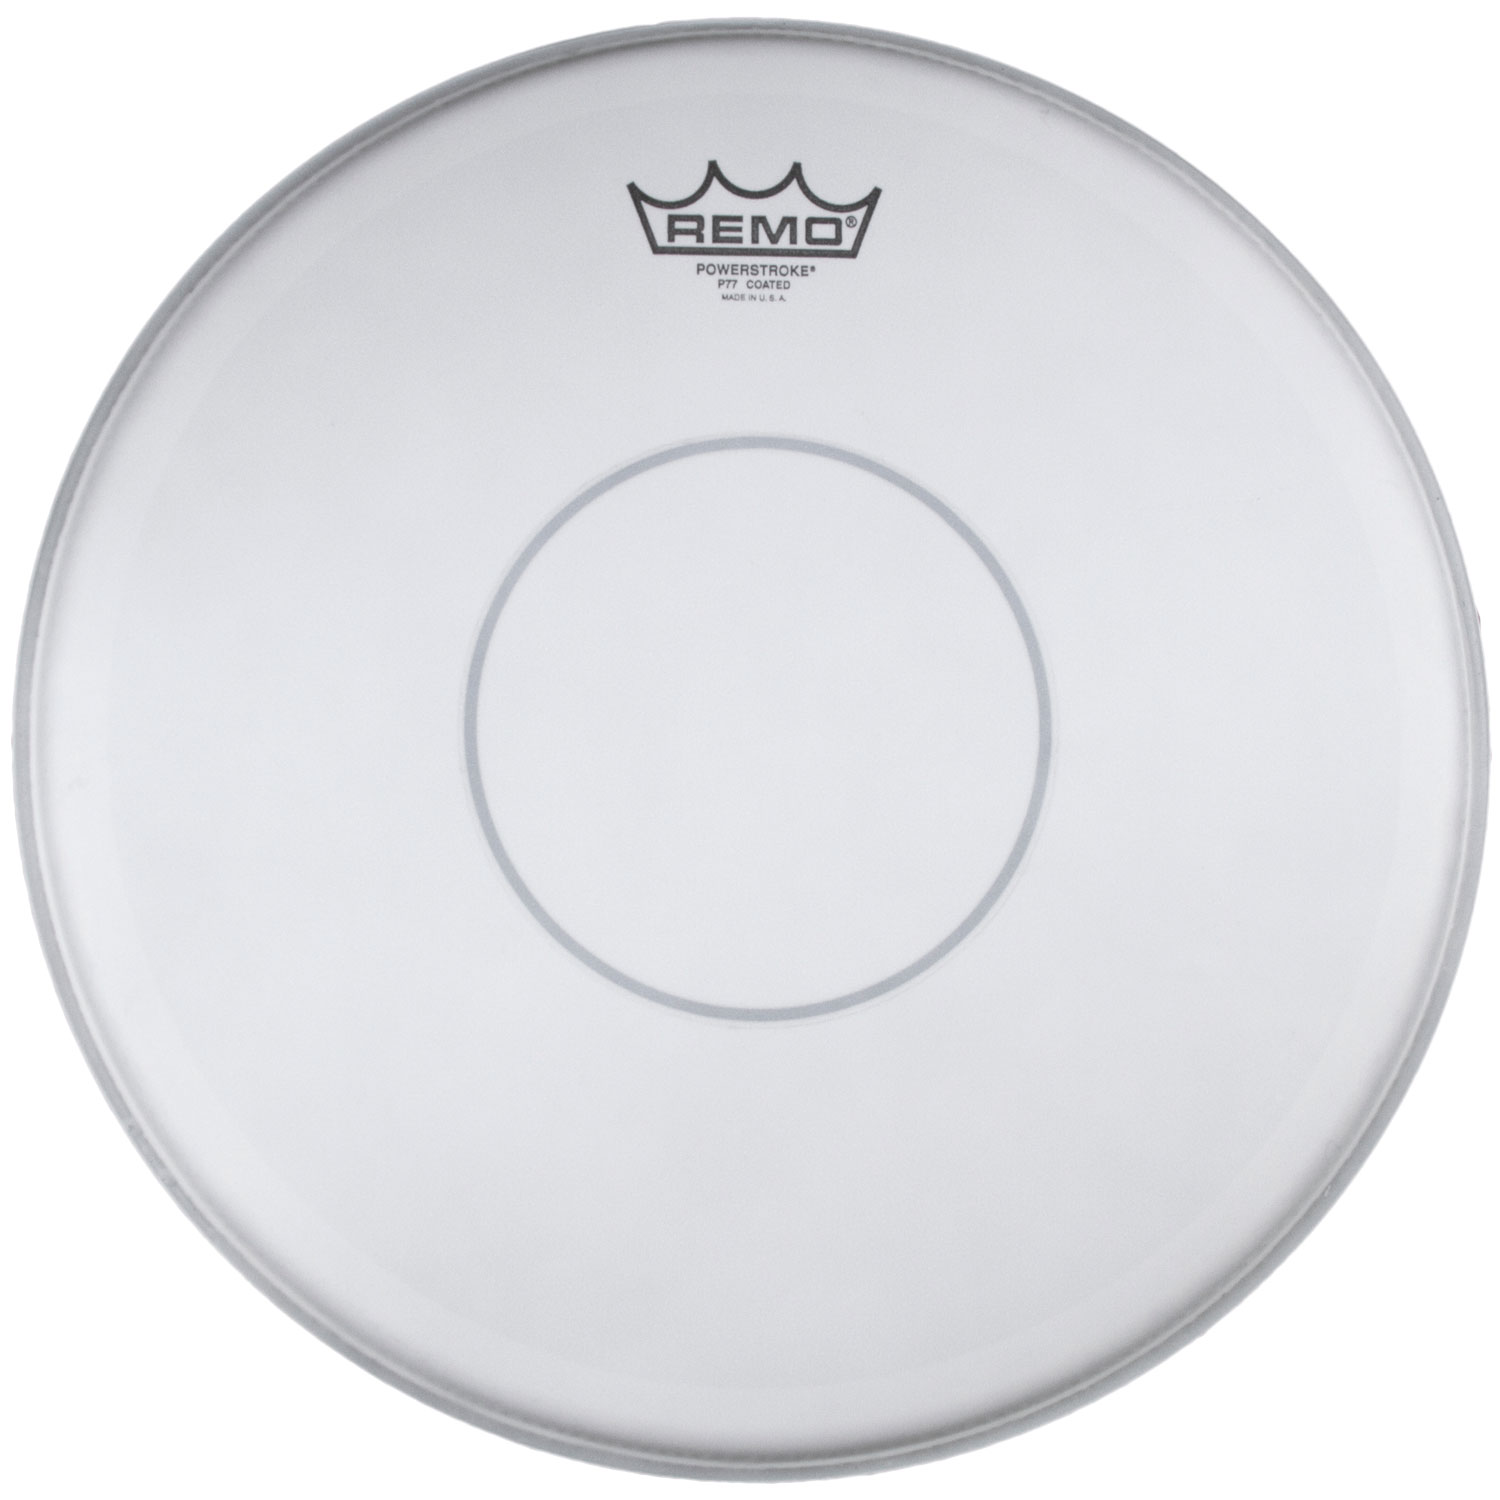 "Remo 13"" Powerstroke 77 Coated Drum Head with Clear Dot"